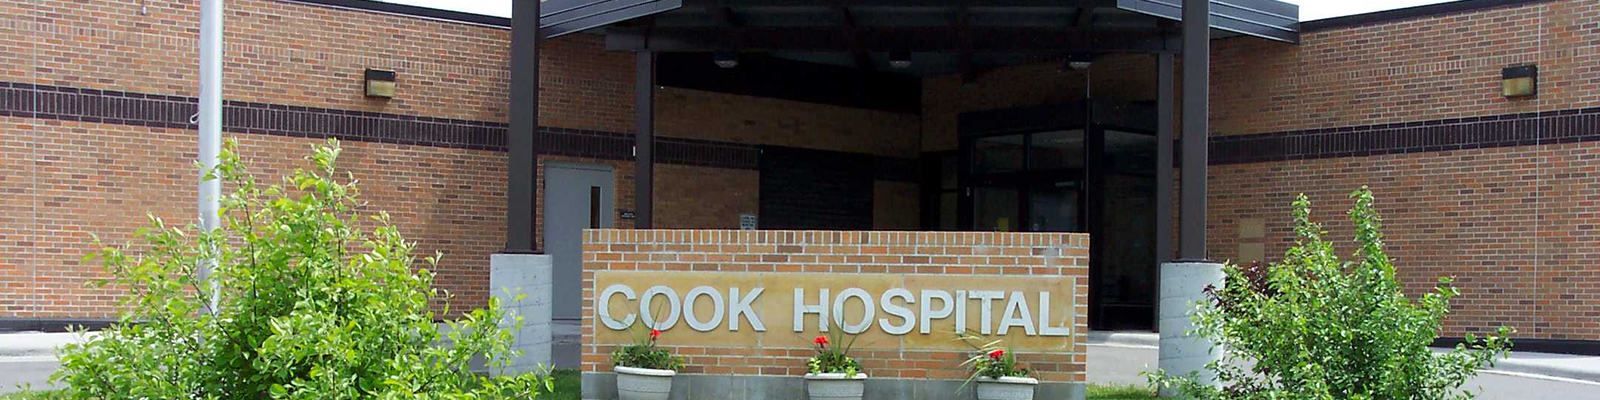 Physicians | Cook Hospital